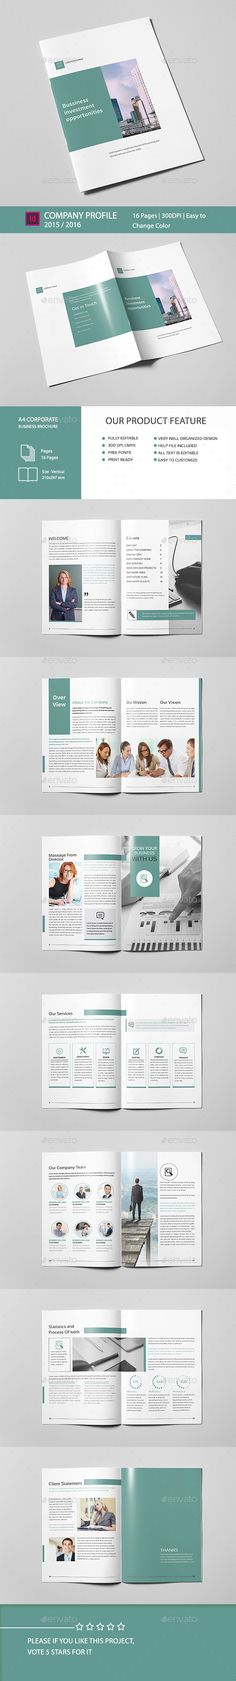 Kreatype Company Profile Company profile, Profile and Template - corporate profile template